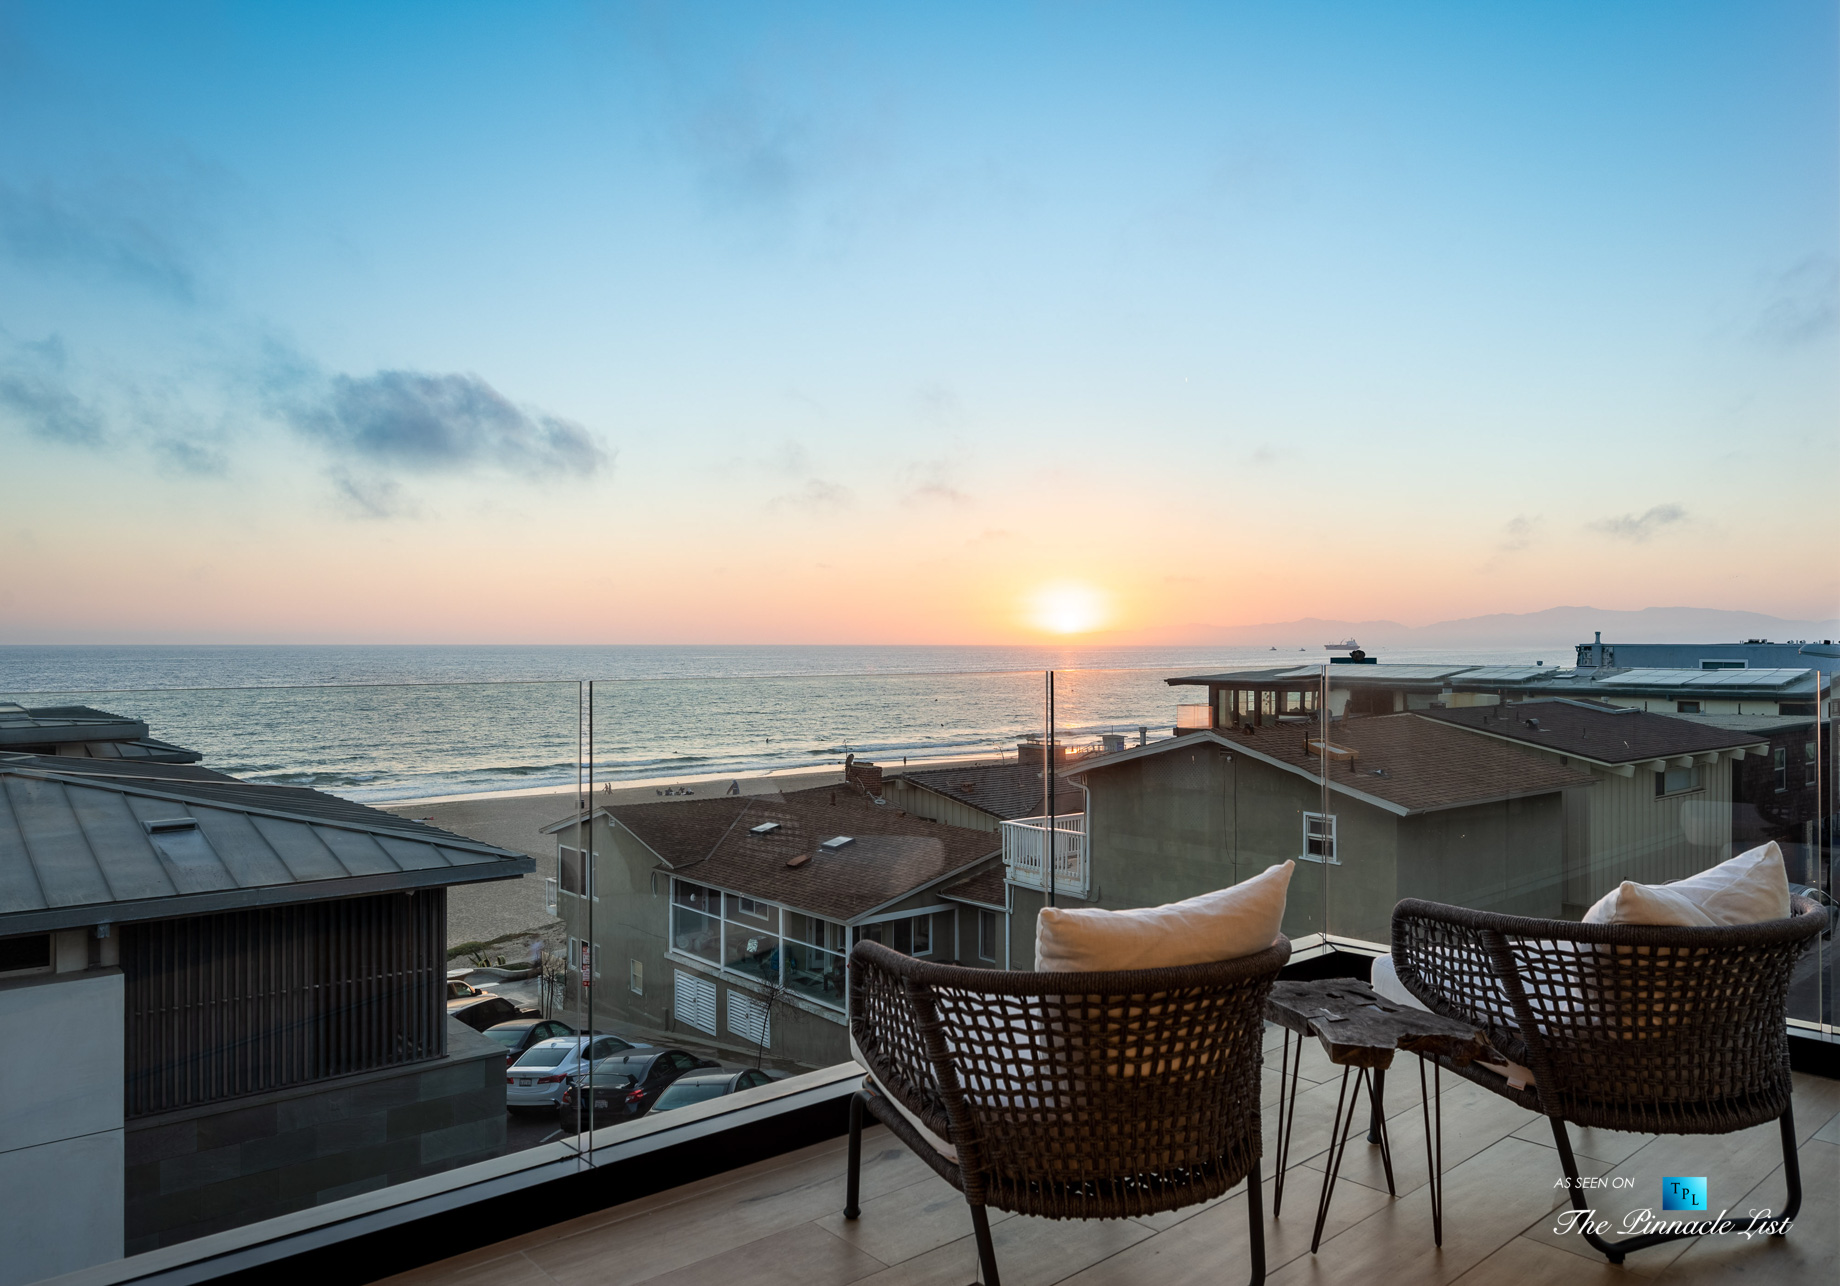 2016 Ocean Dr, Manhattan Beach, CA, USA - Master Bedroom Balcony Sunset View - Luxury Real Estate - Modern Ocean View Home